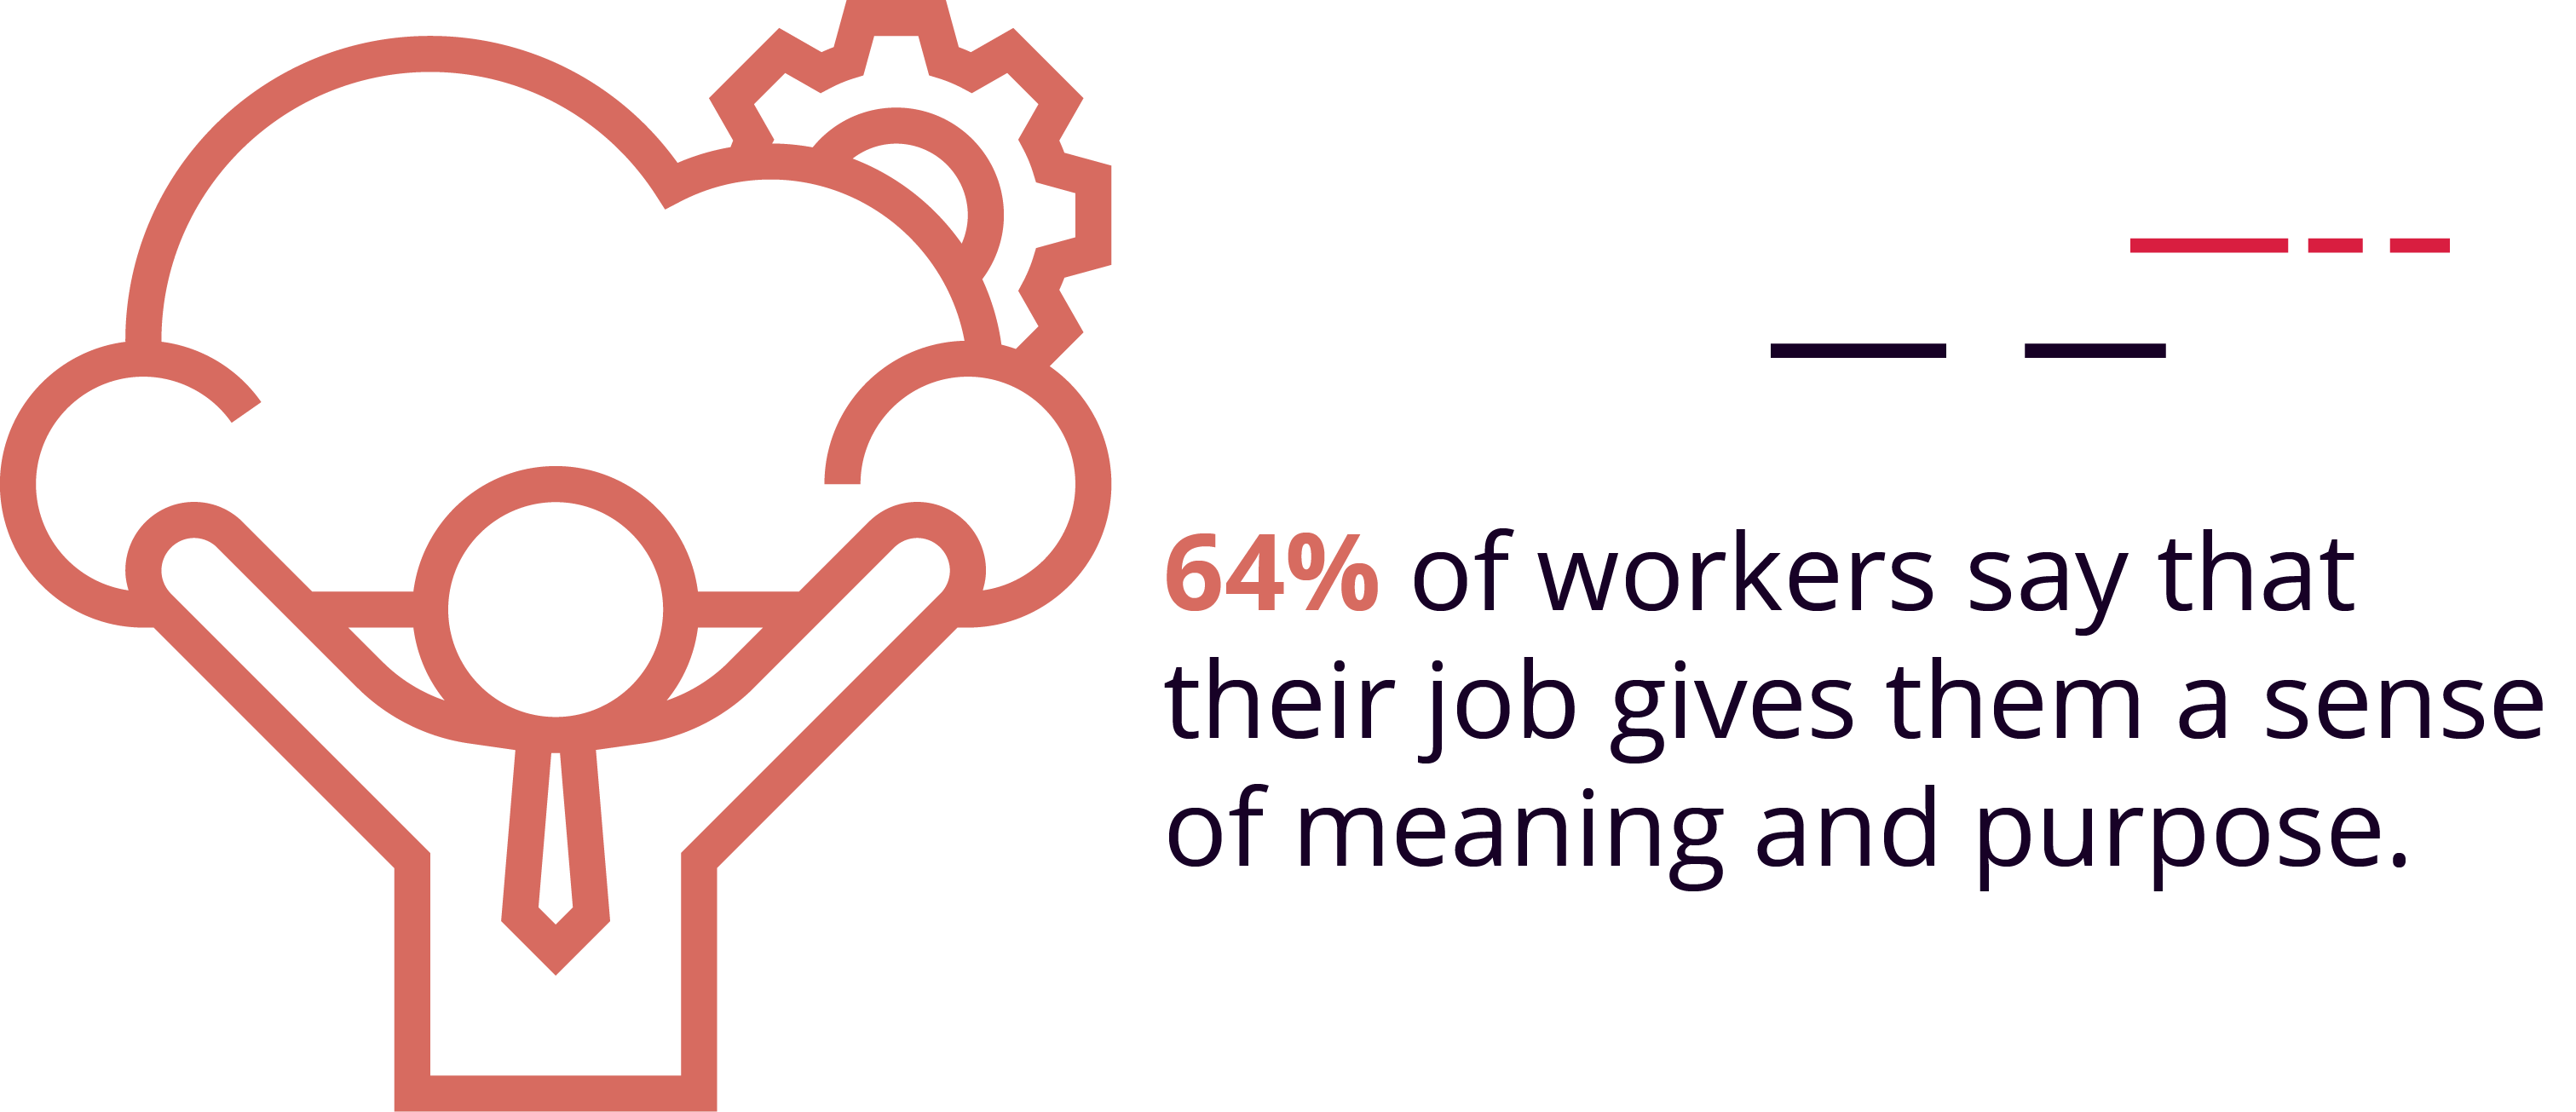 64% of workers say that their job gives them a sense of meaning and purpose